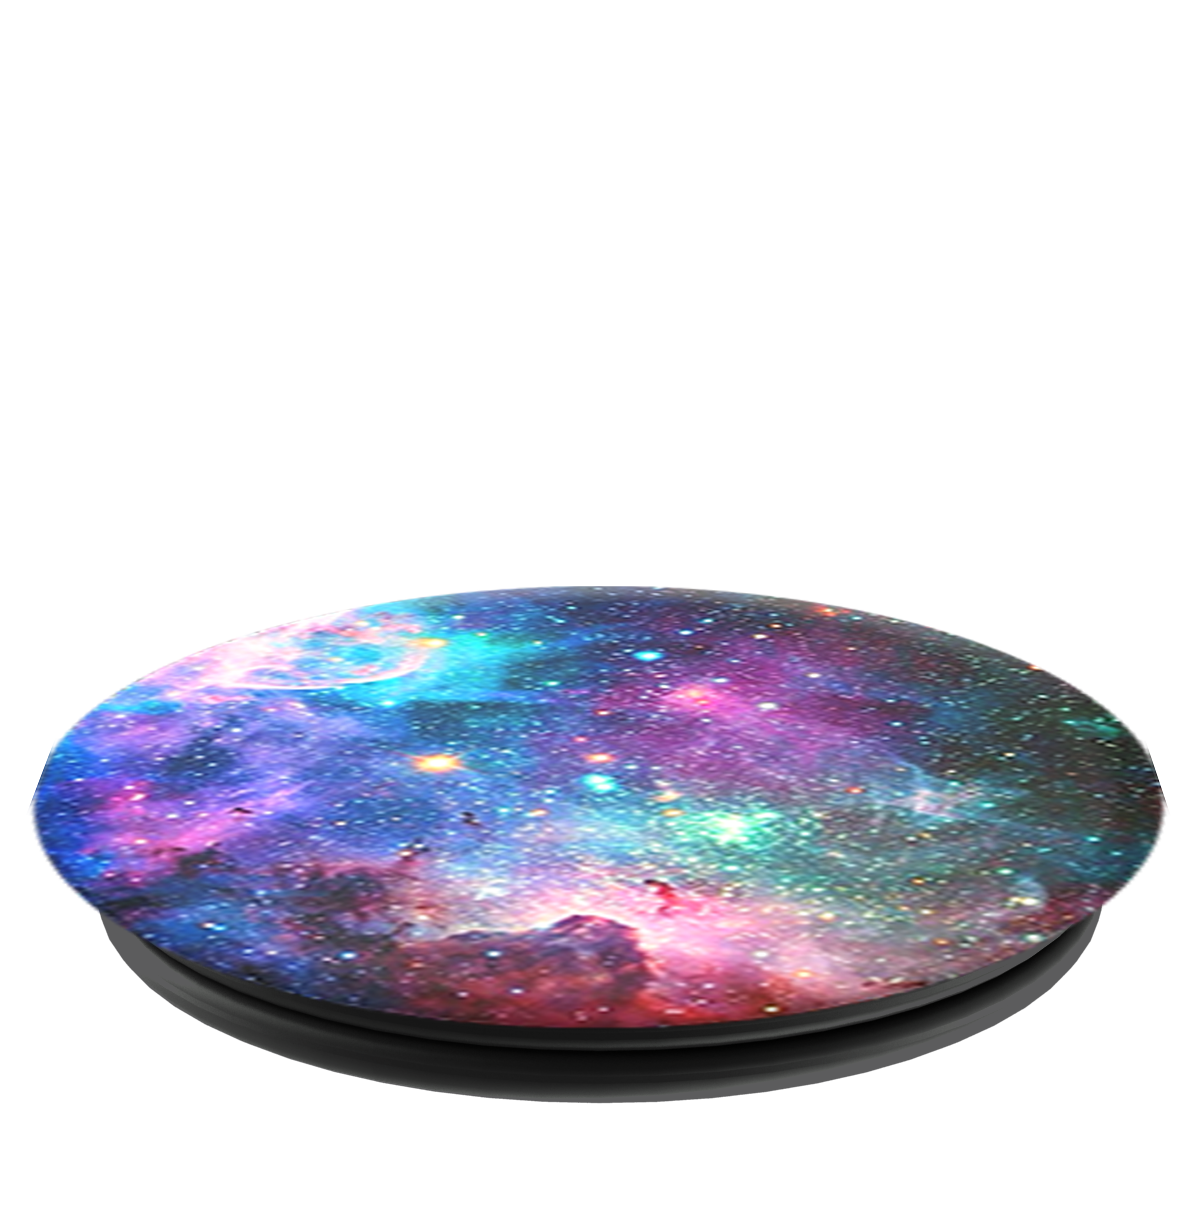 PopSockets Grip Blue Nebula